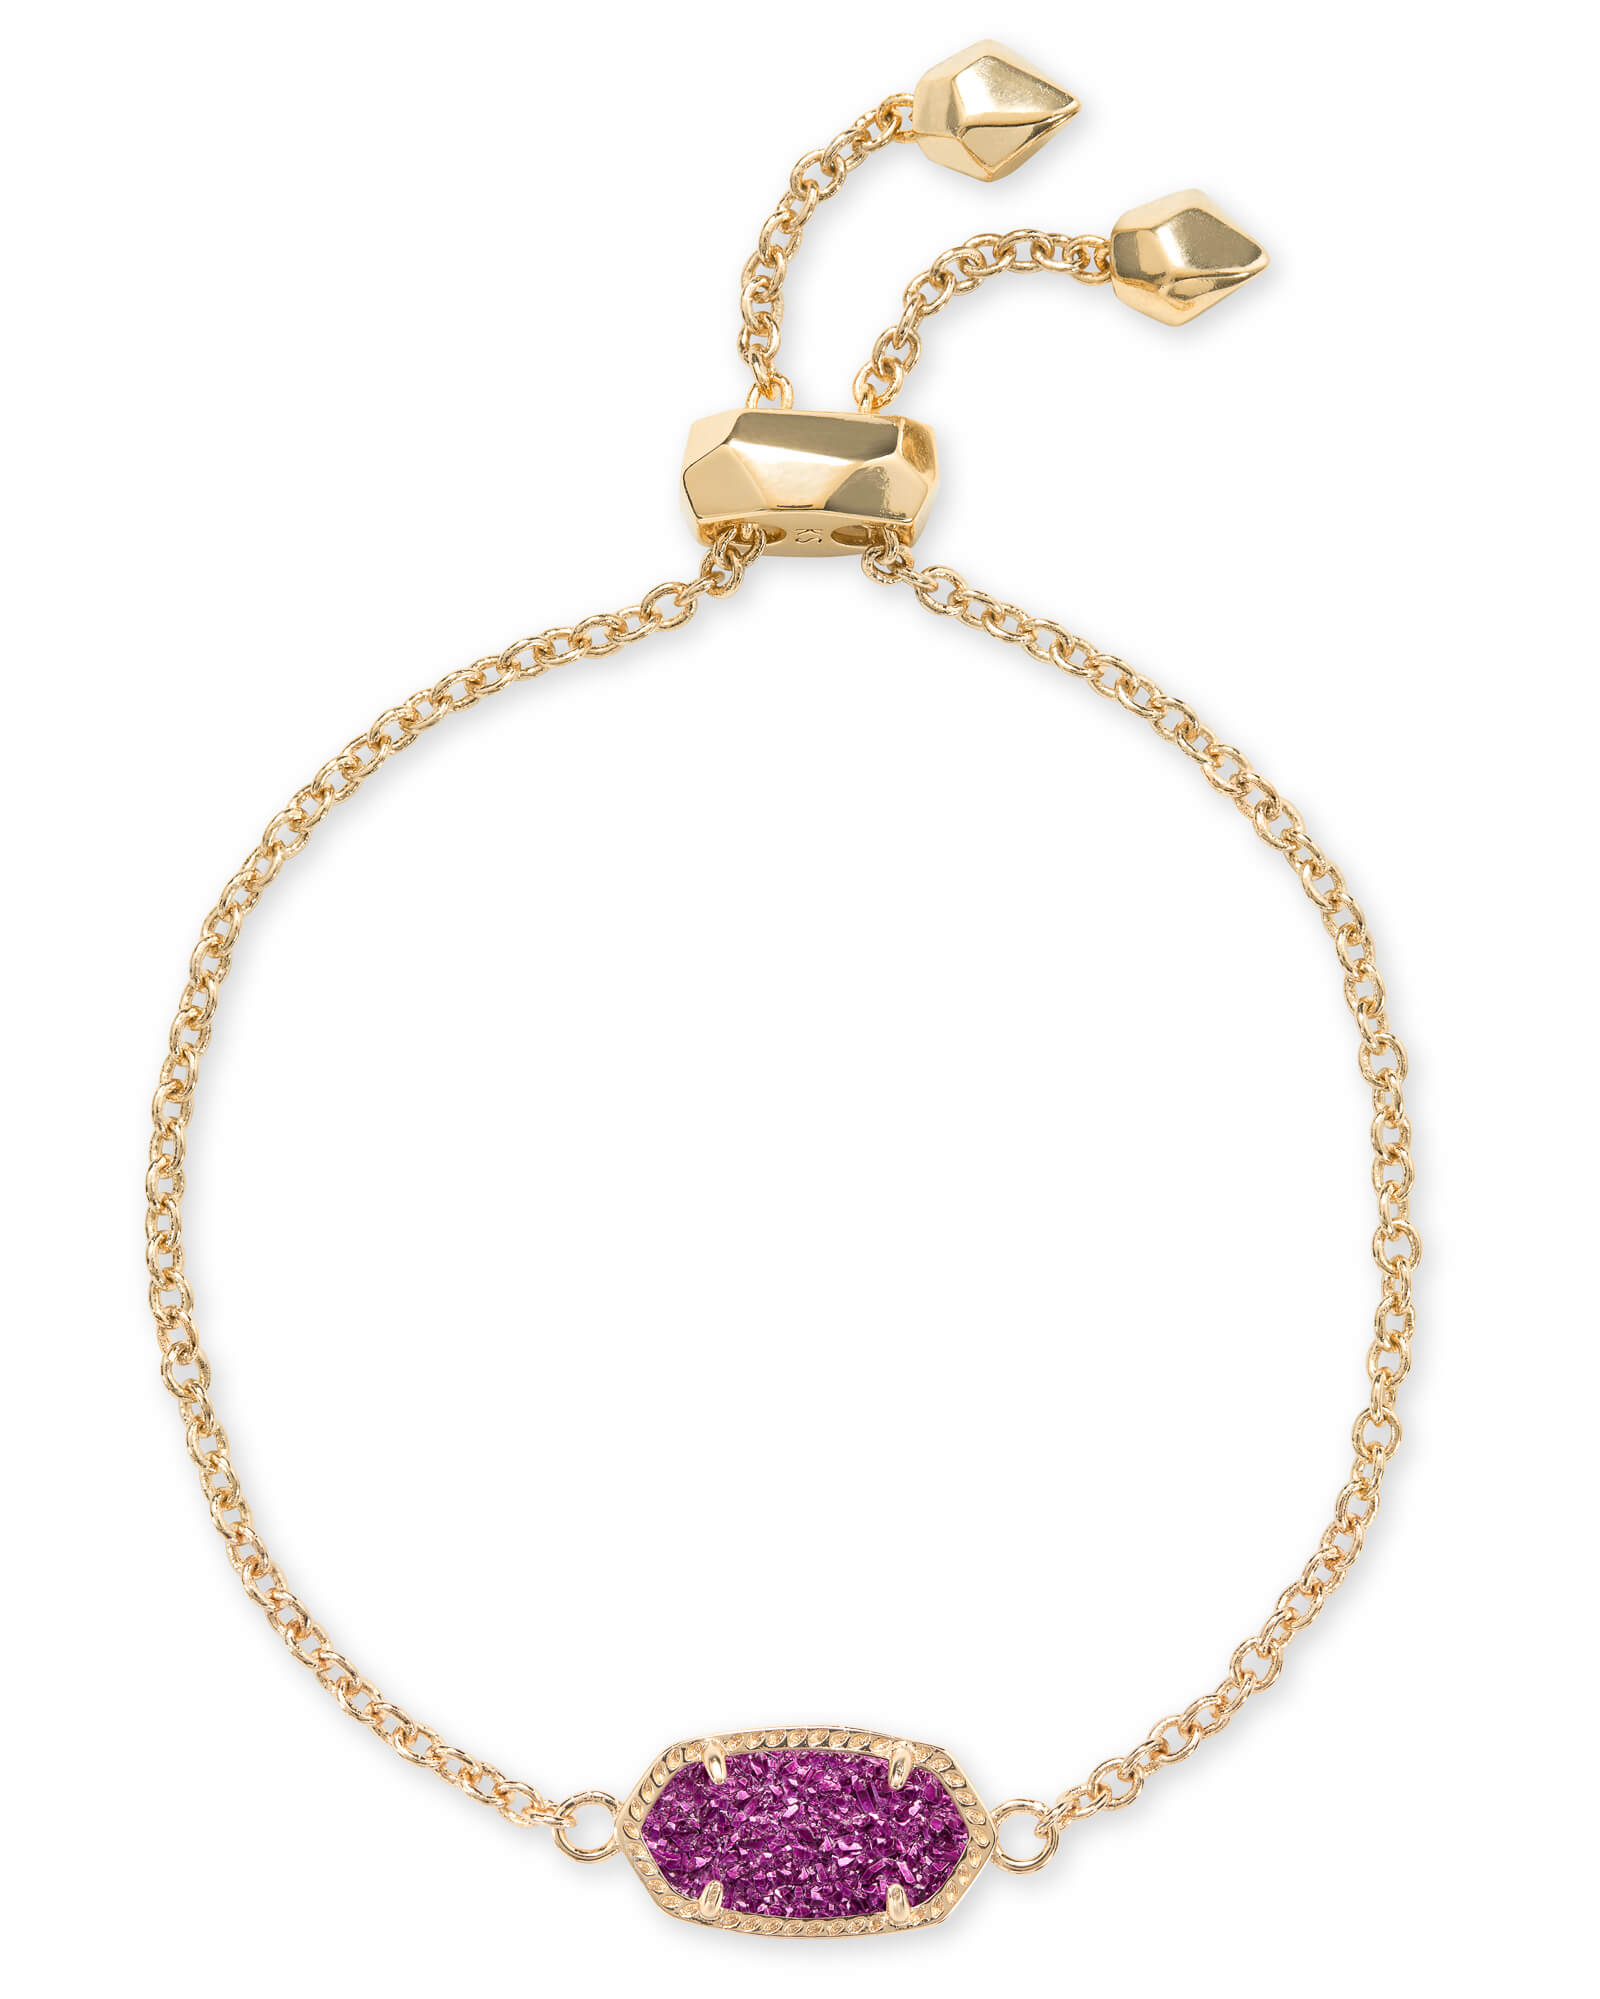 Elaina Gold Adjustable Chain Bracelet in Amethyst Drusy